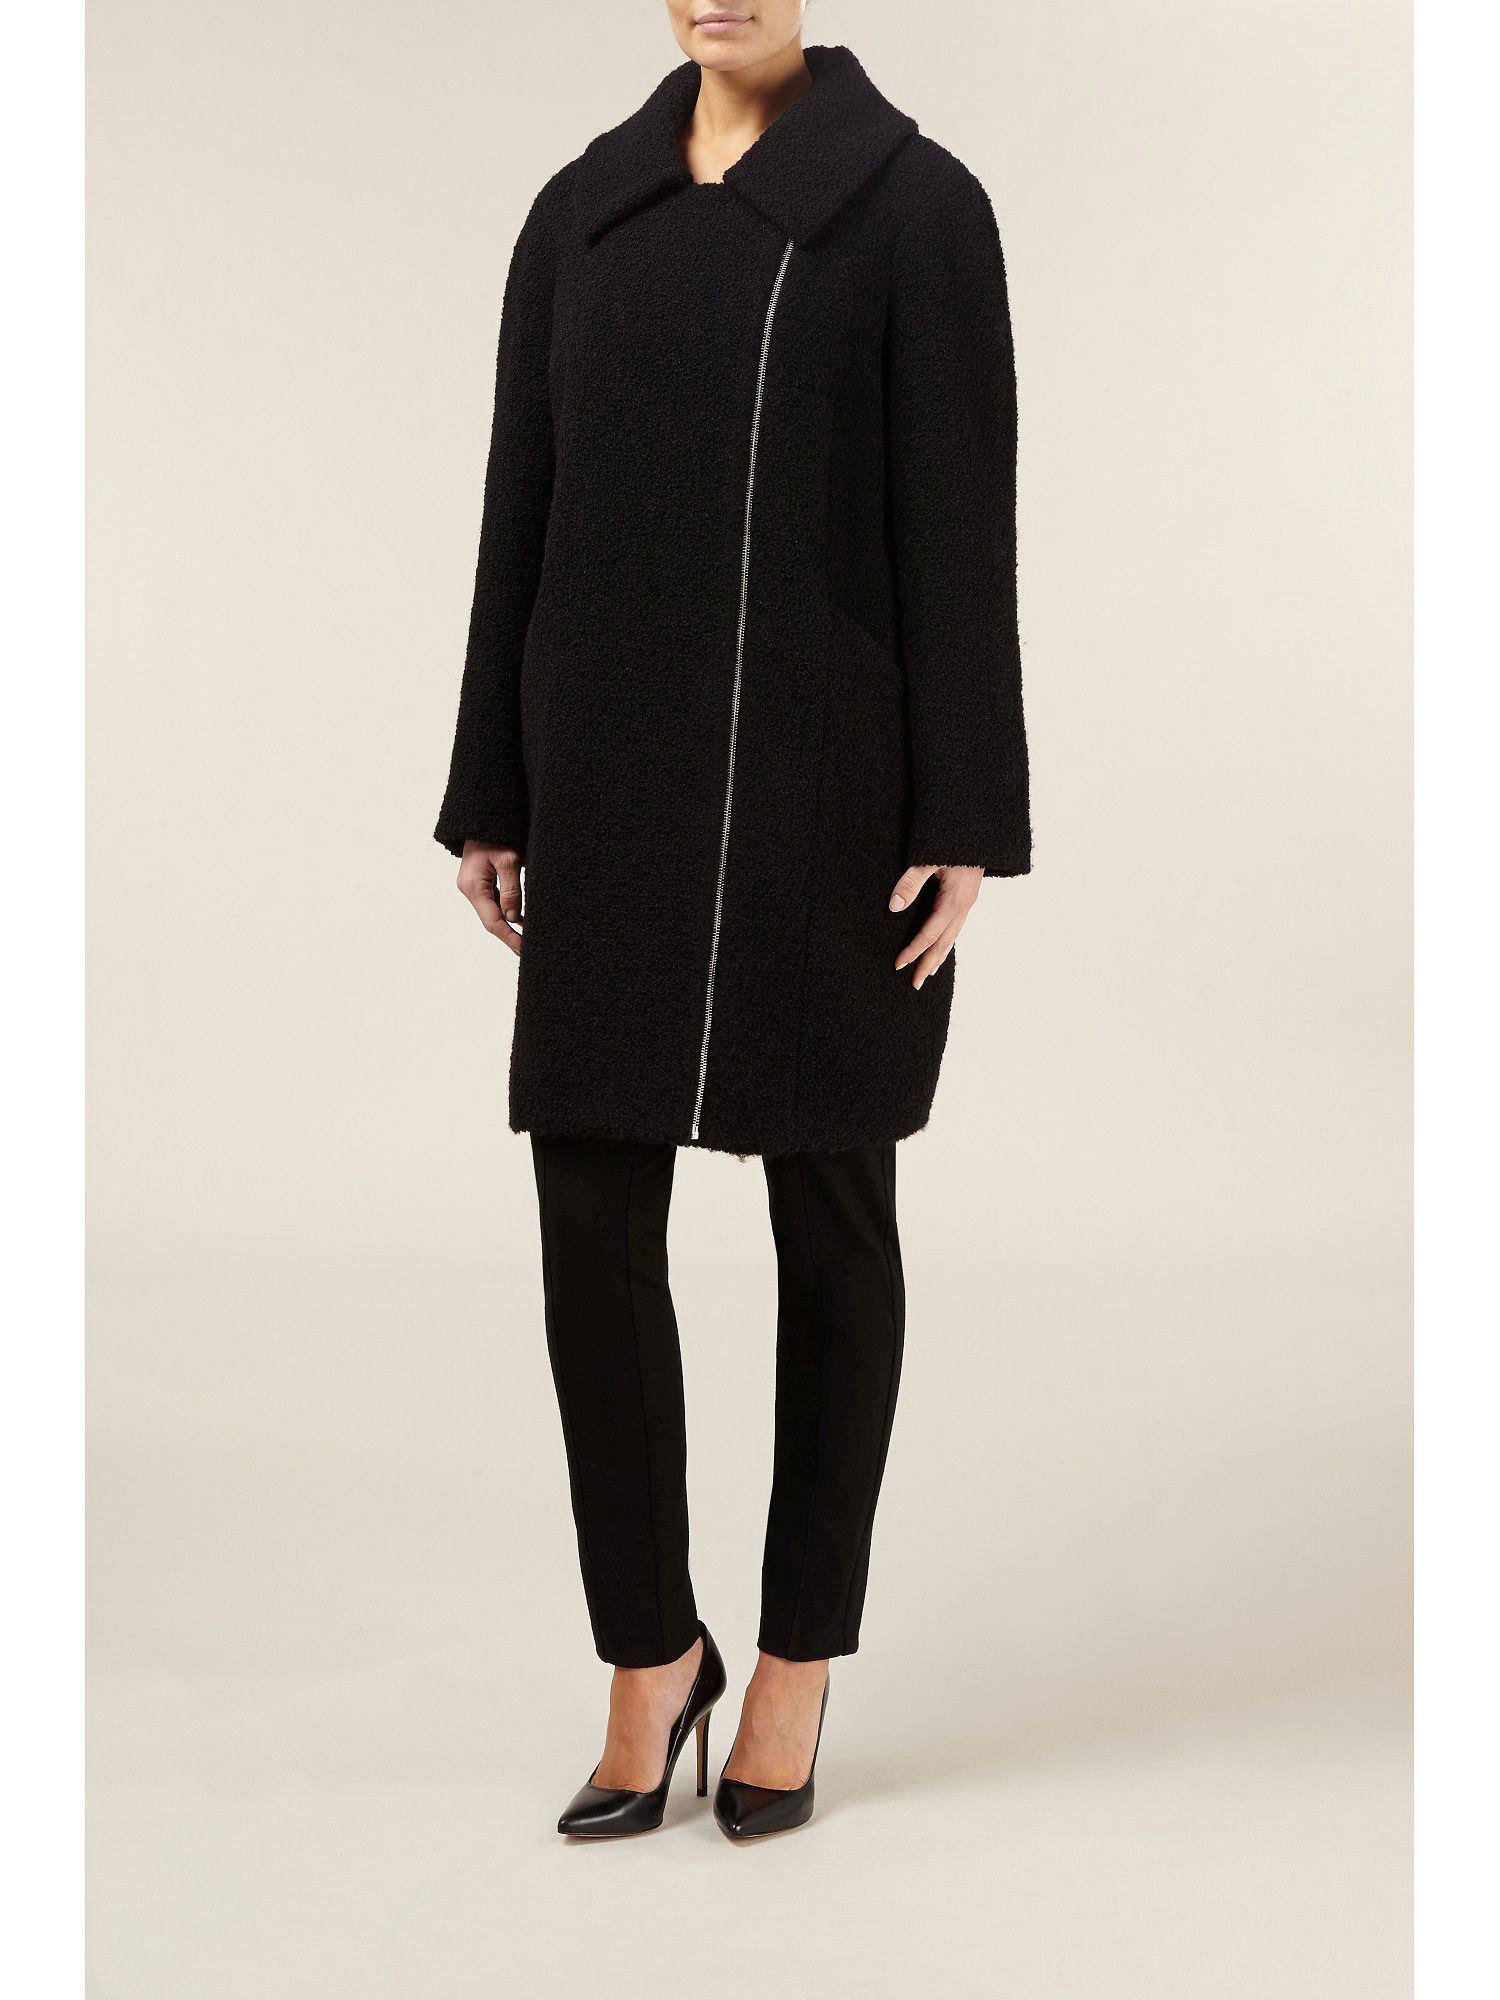 Black boucle cocoon wool coat